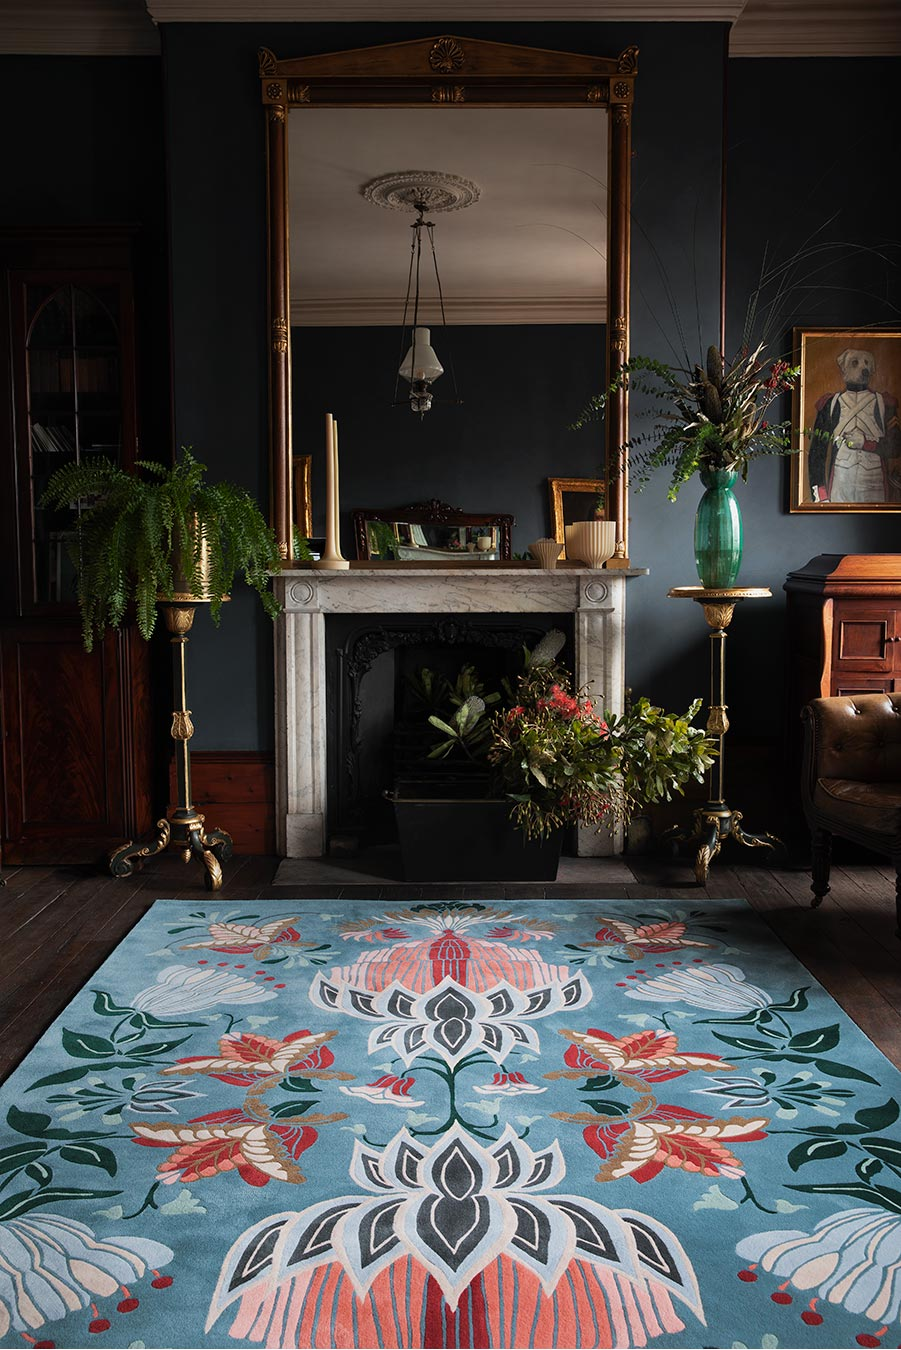 Location image of floral Cinnamon Bloom rug by House Of Heras in blue colour